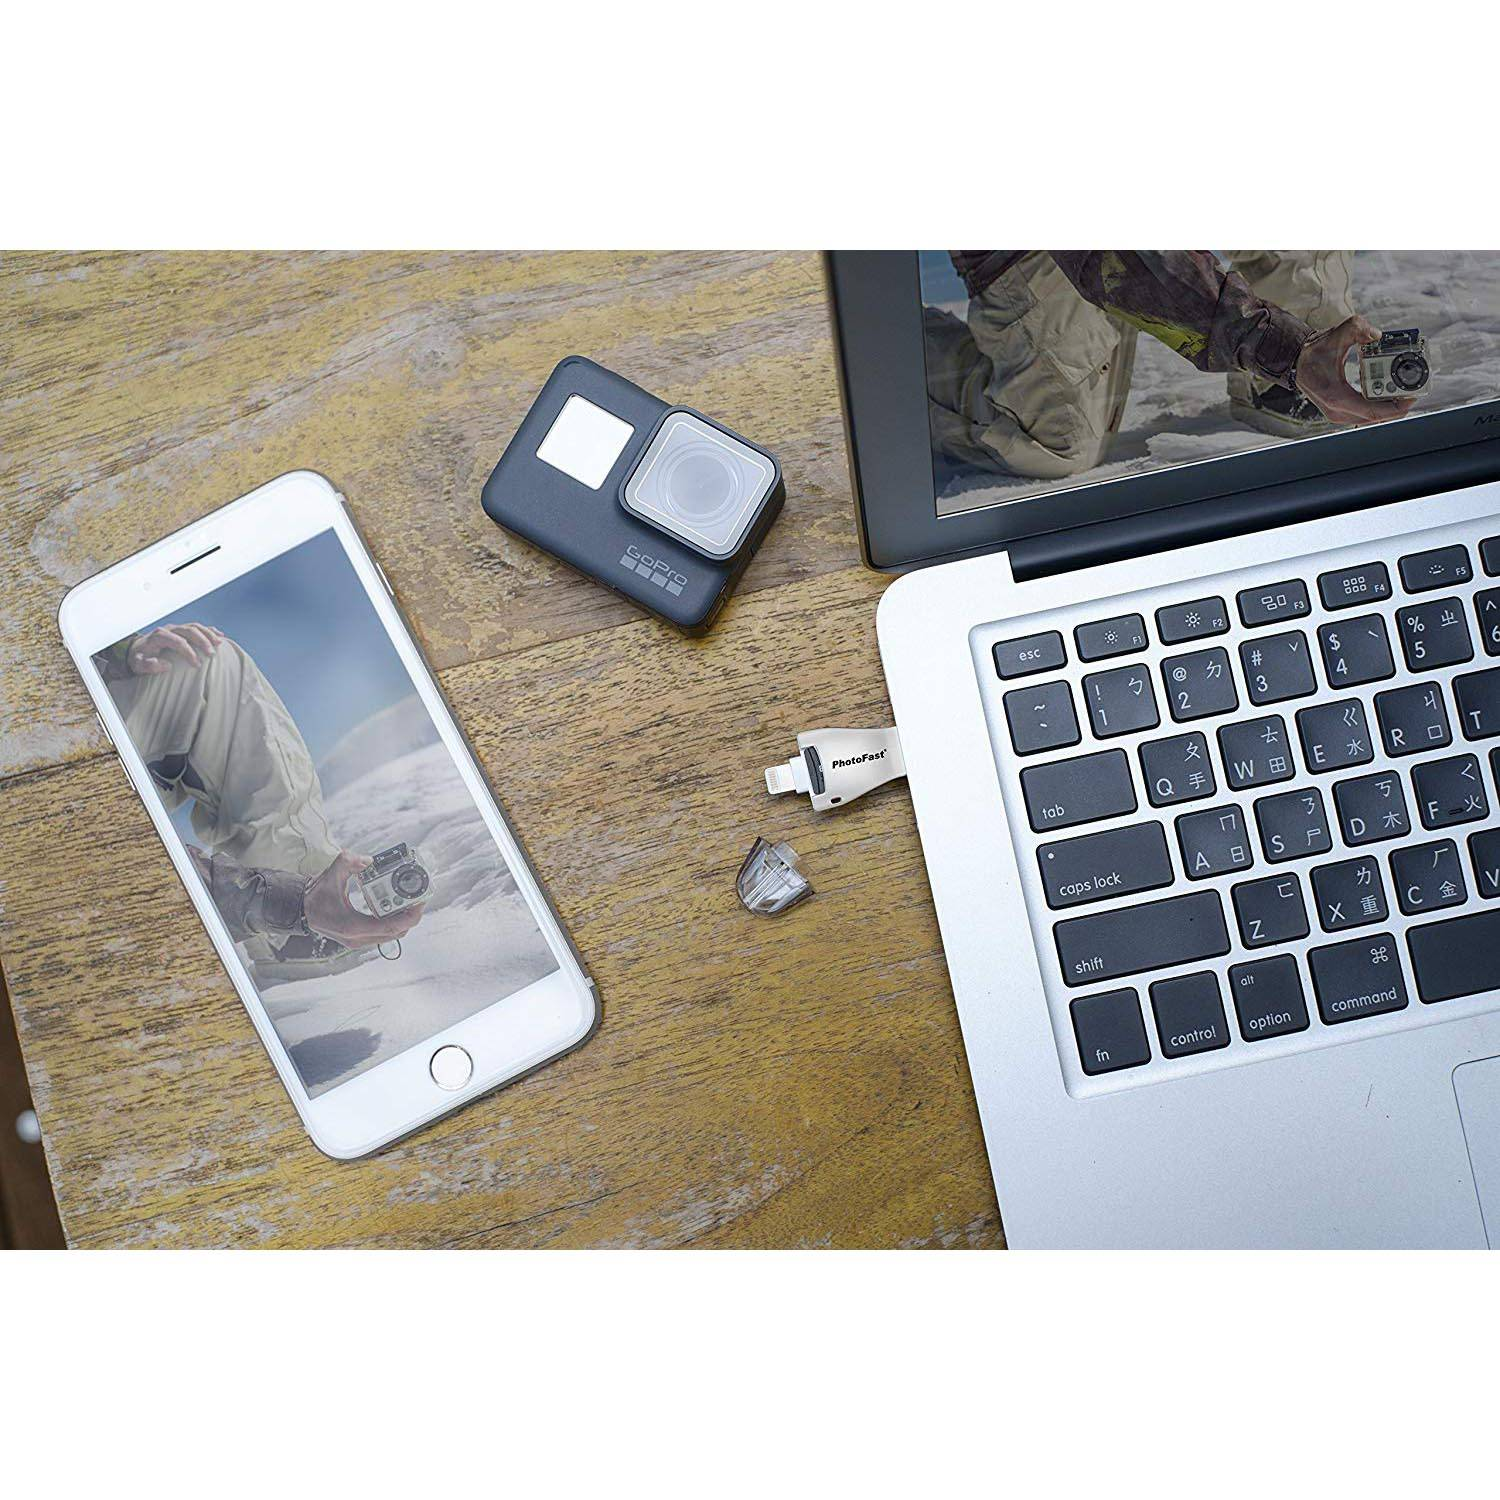 PhotoFast PhotoFast 4K iReader+  Flash Memory Card Reader for Apple Devices